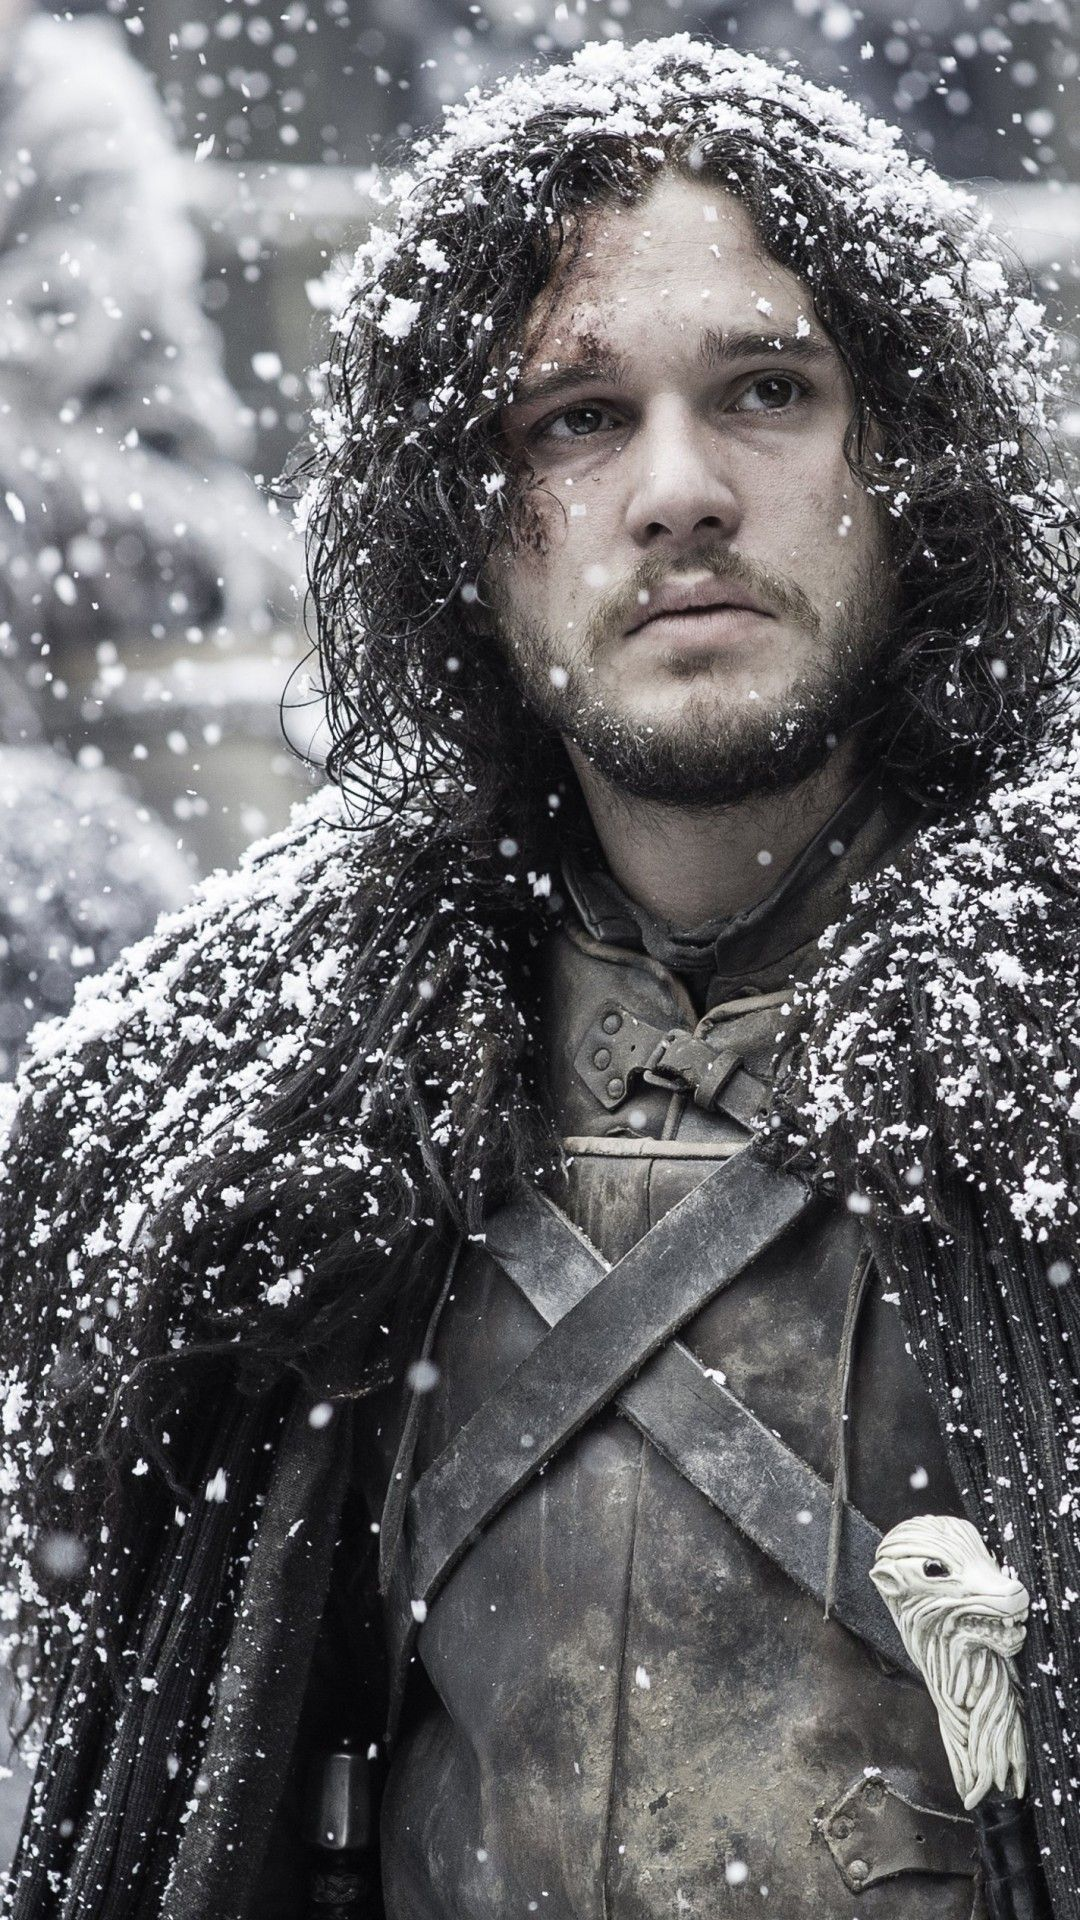 Jon Snow Game Of Thrones Hd Iphone Wallpapers Hupages Download Iphone Wallpapers Jon Snow Snow Wallpaper Hd Snow Jon snow game of thrones wallpaper